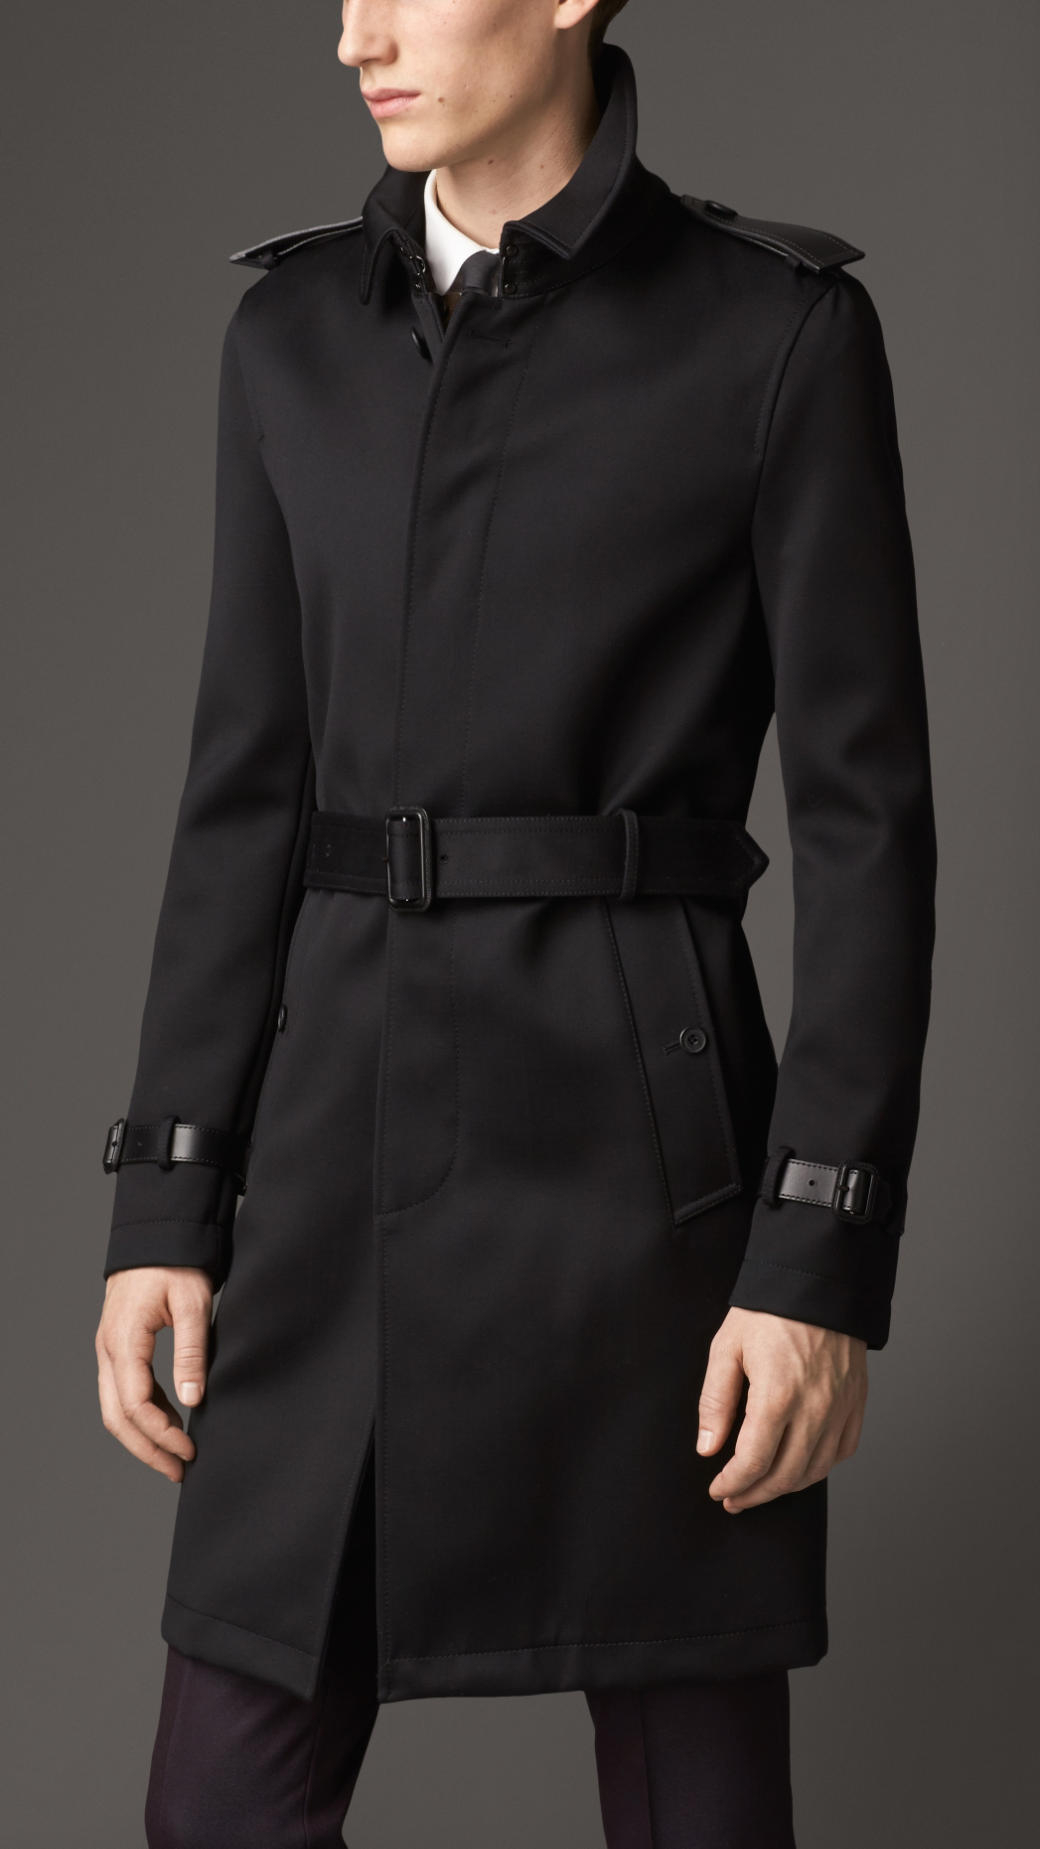 689d15ae162 Burberry Burberry Silk Wool Coat for Black Trench Men Length Mid in Lyst  wAdnqt4A